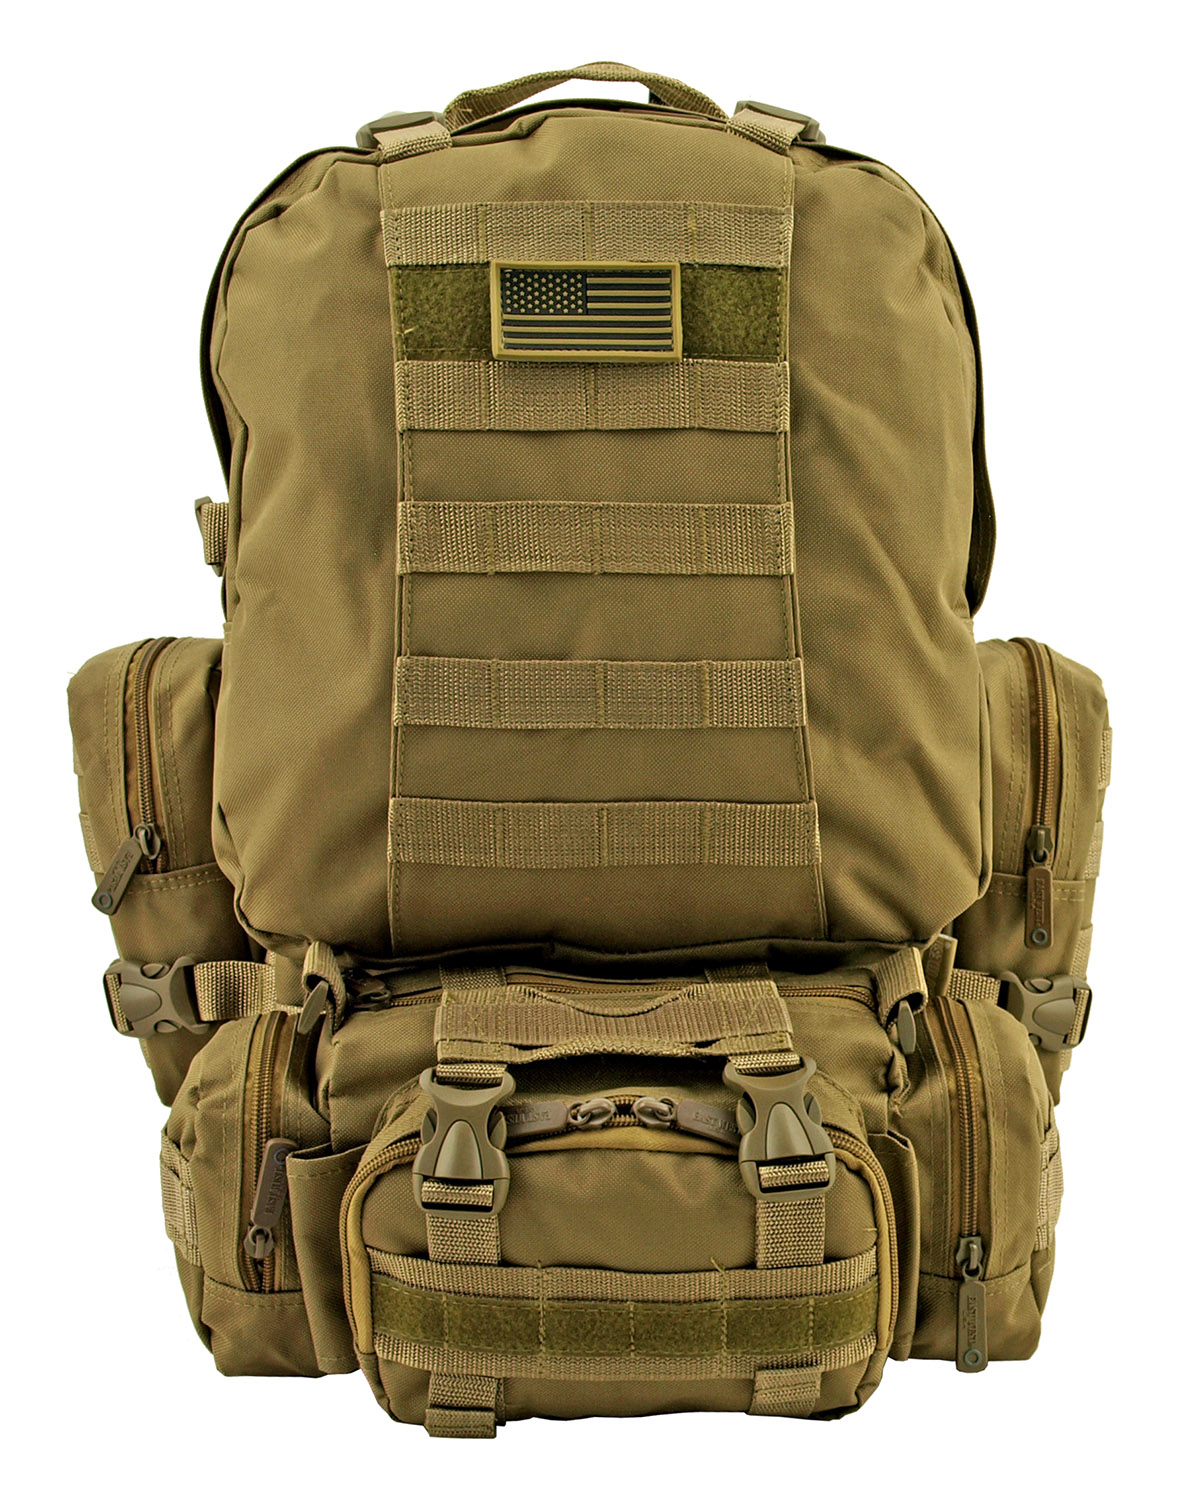 Large Tactical Assault Rucksack Backpack - Desert Tan